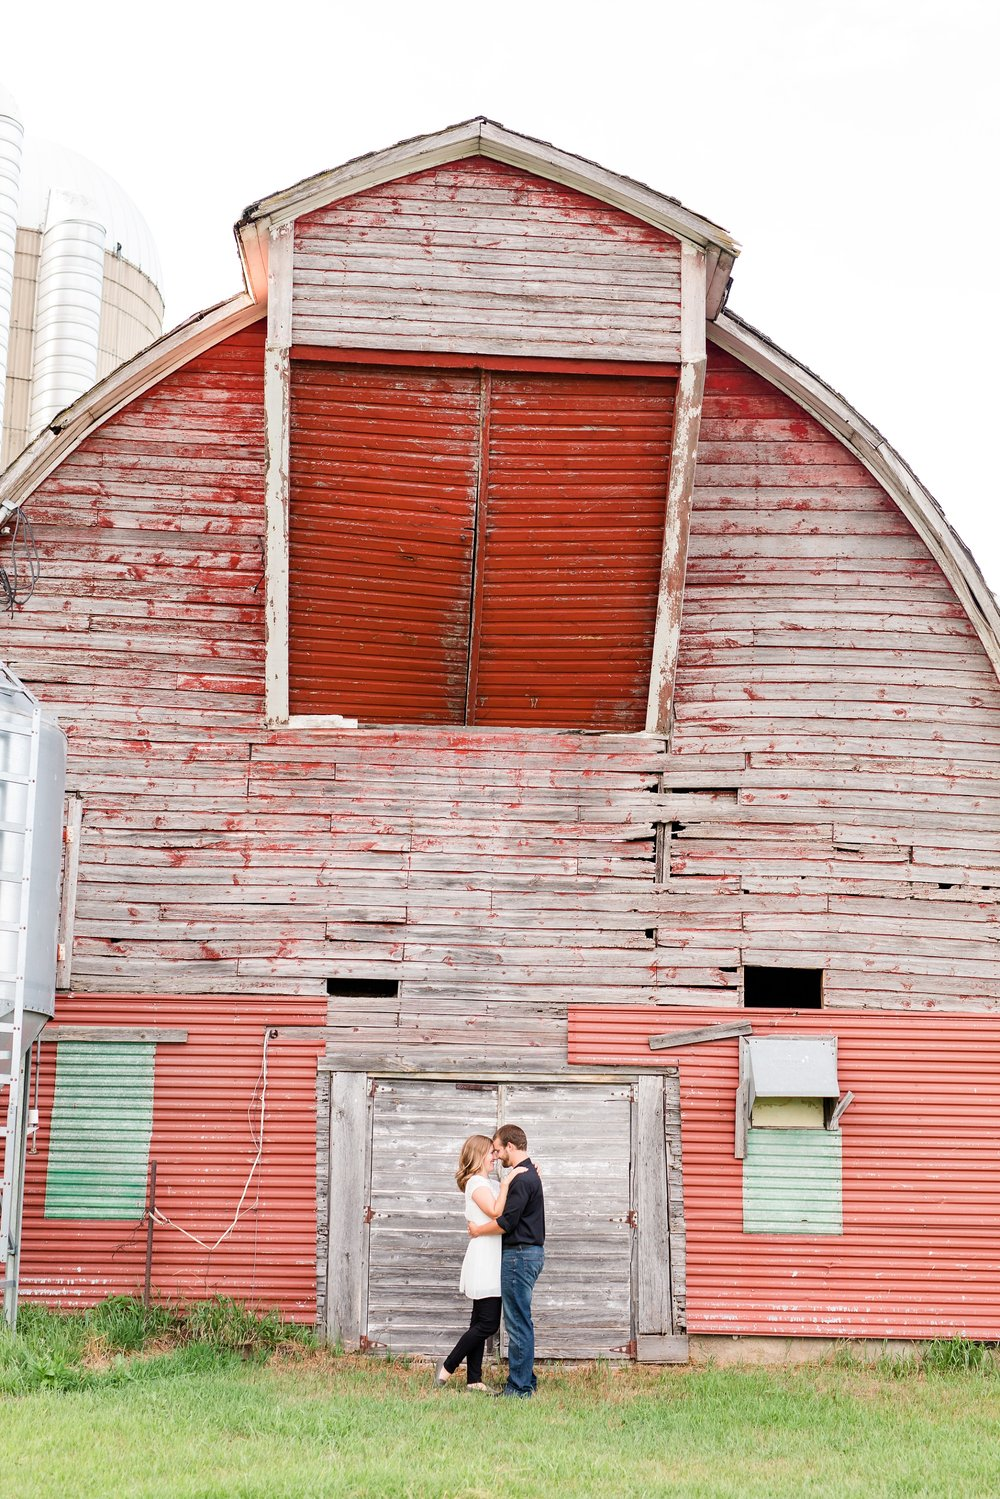 AmberLangerudPhotography_Countryside Engagement Session in Minnesota_3118.jpg